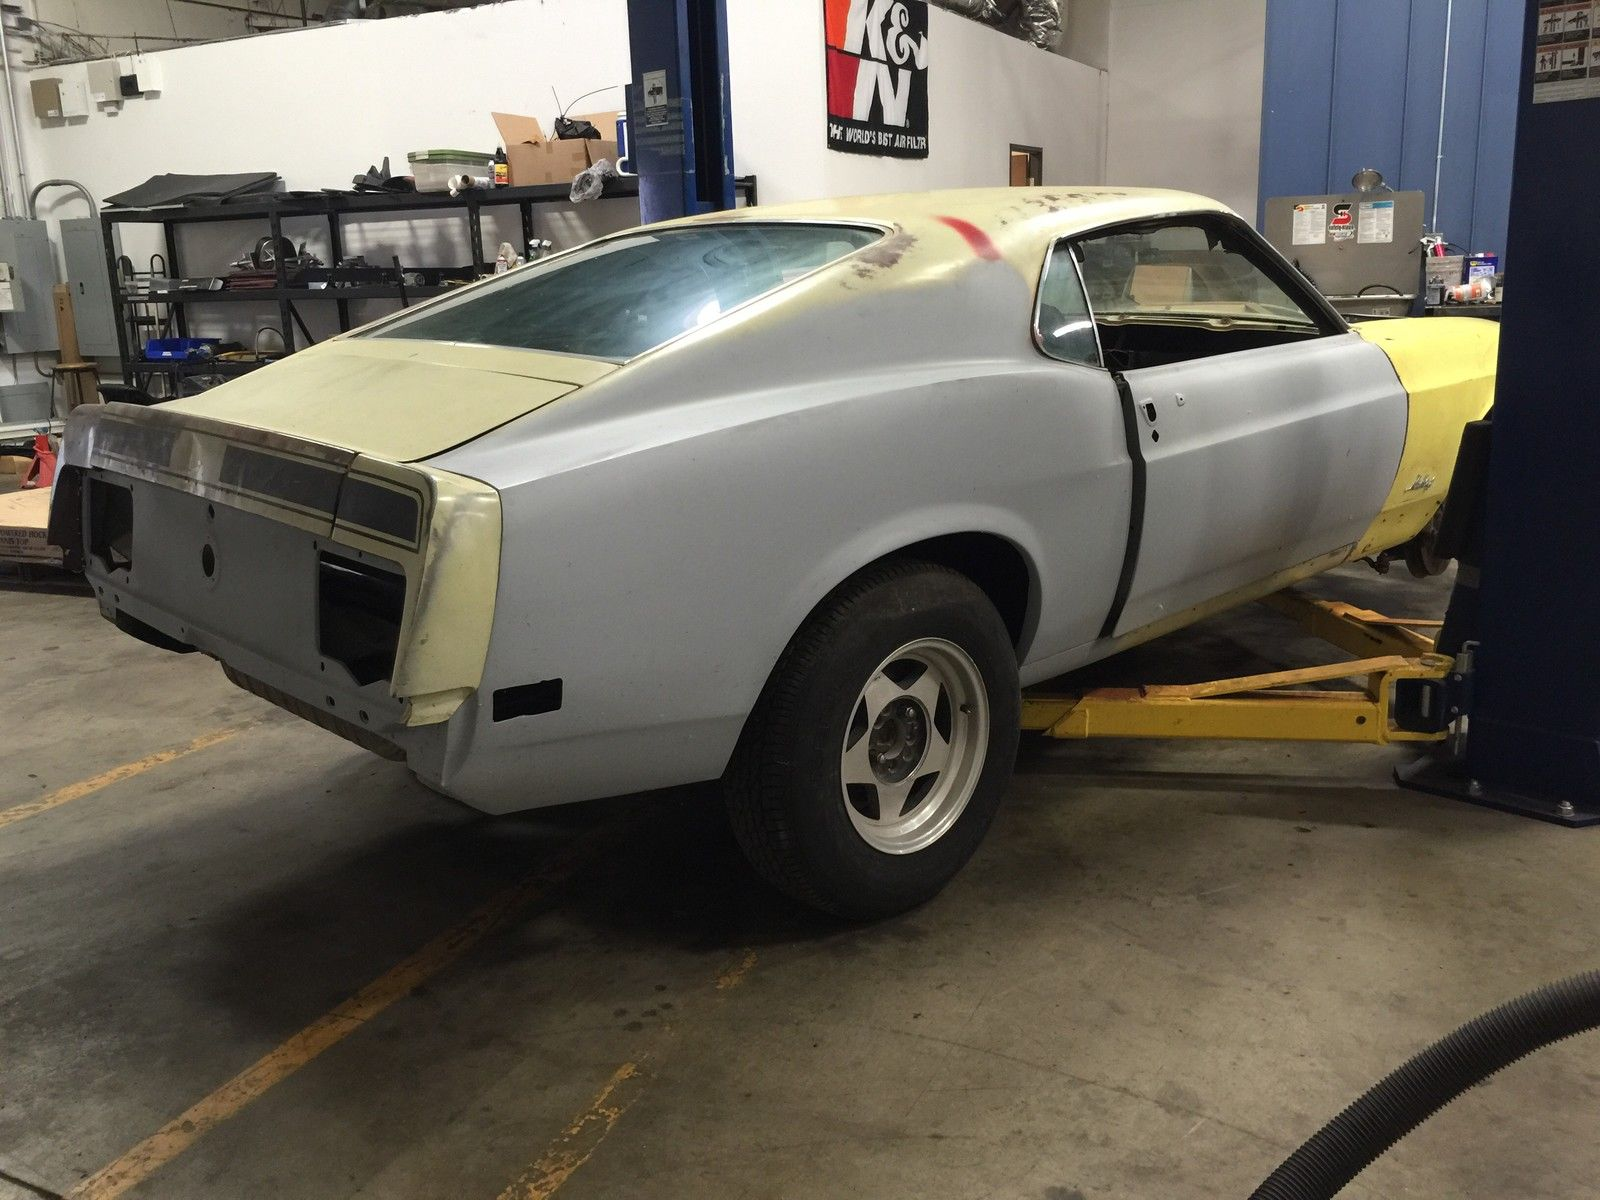 1970 Ford Mustang Mach 1 Fastback 351 V8 Auto Roller Project Rust